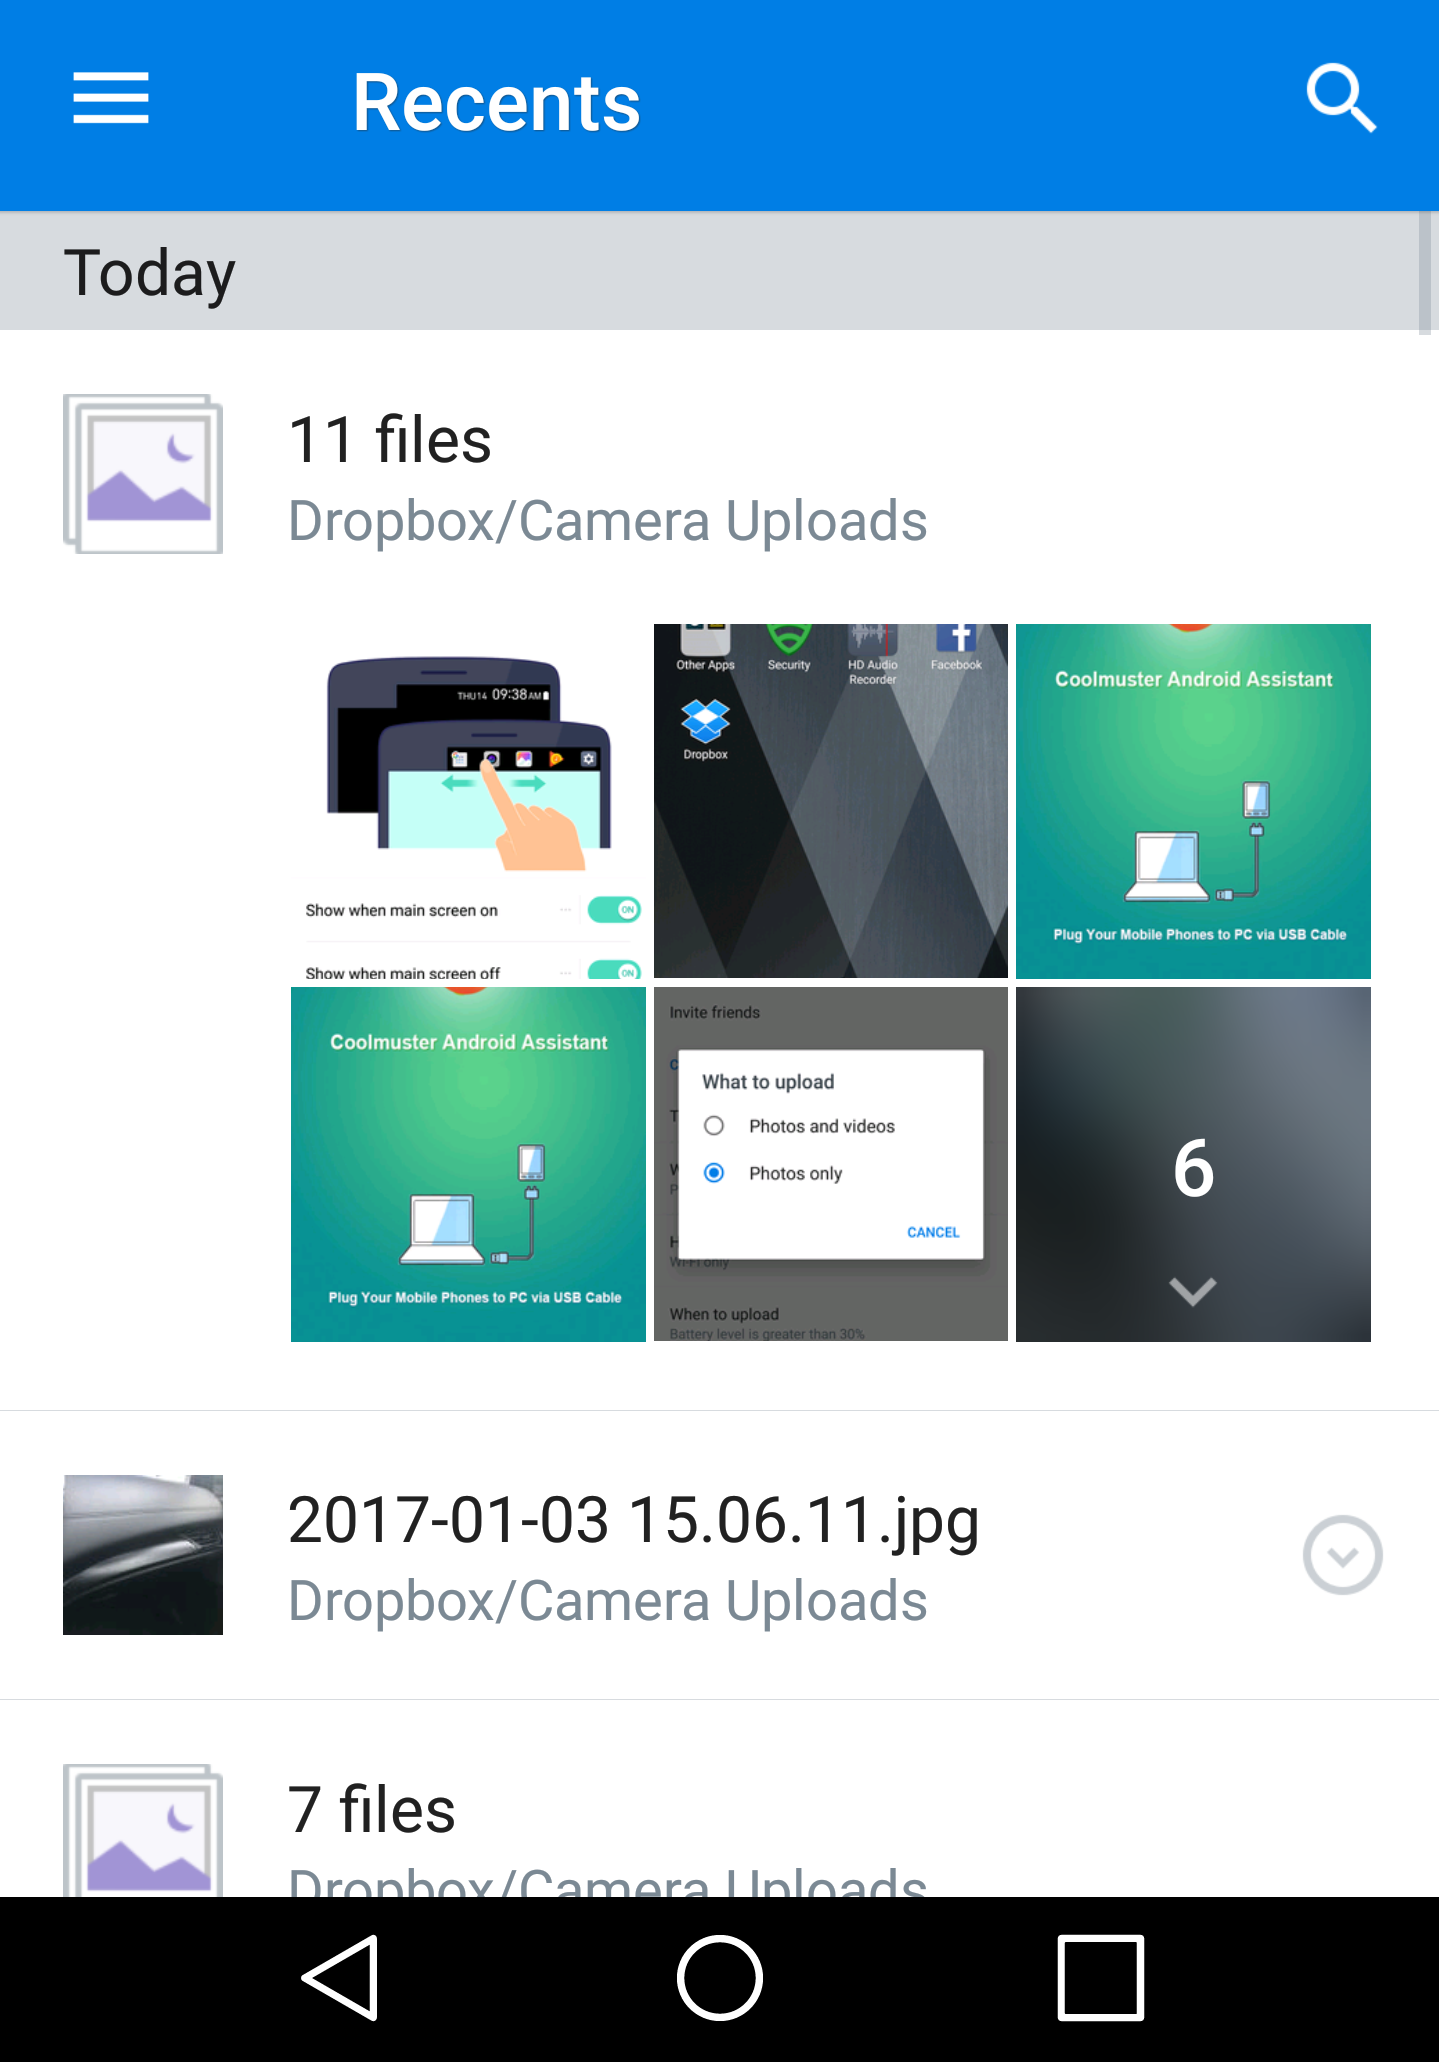 How to have DropBox auto-upload photos on my phone? - Ask